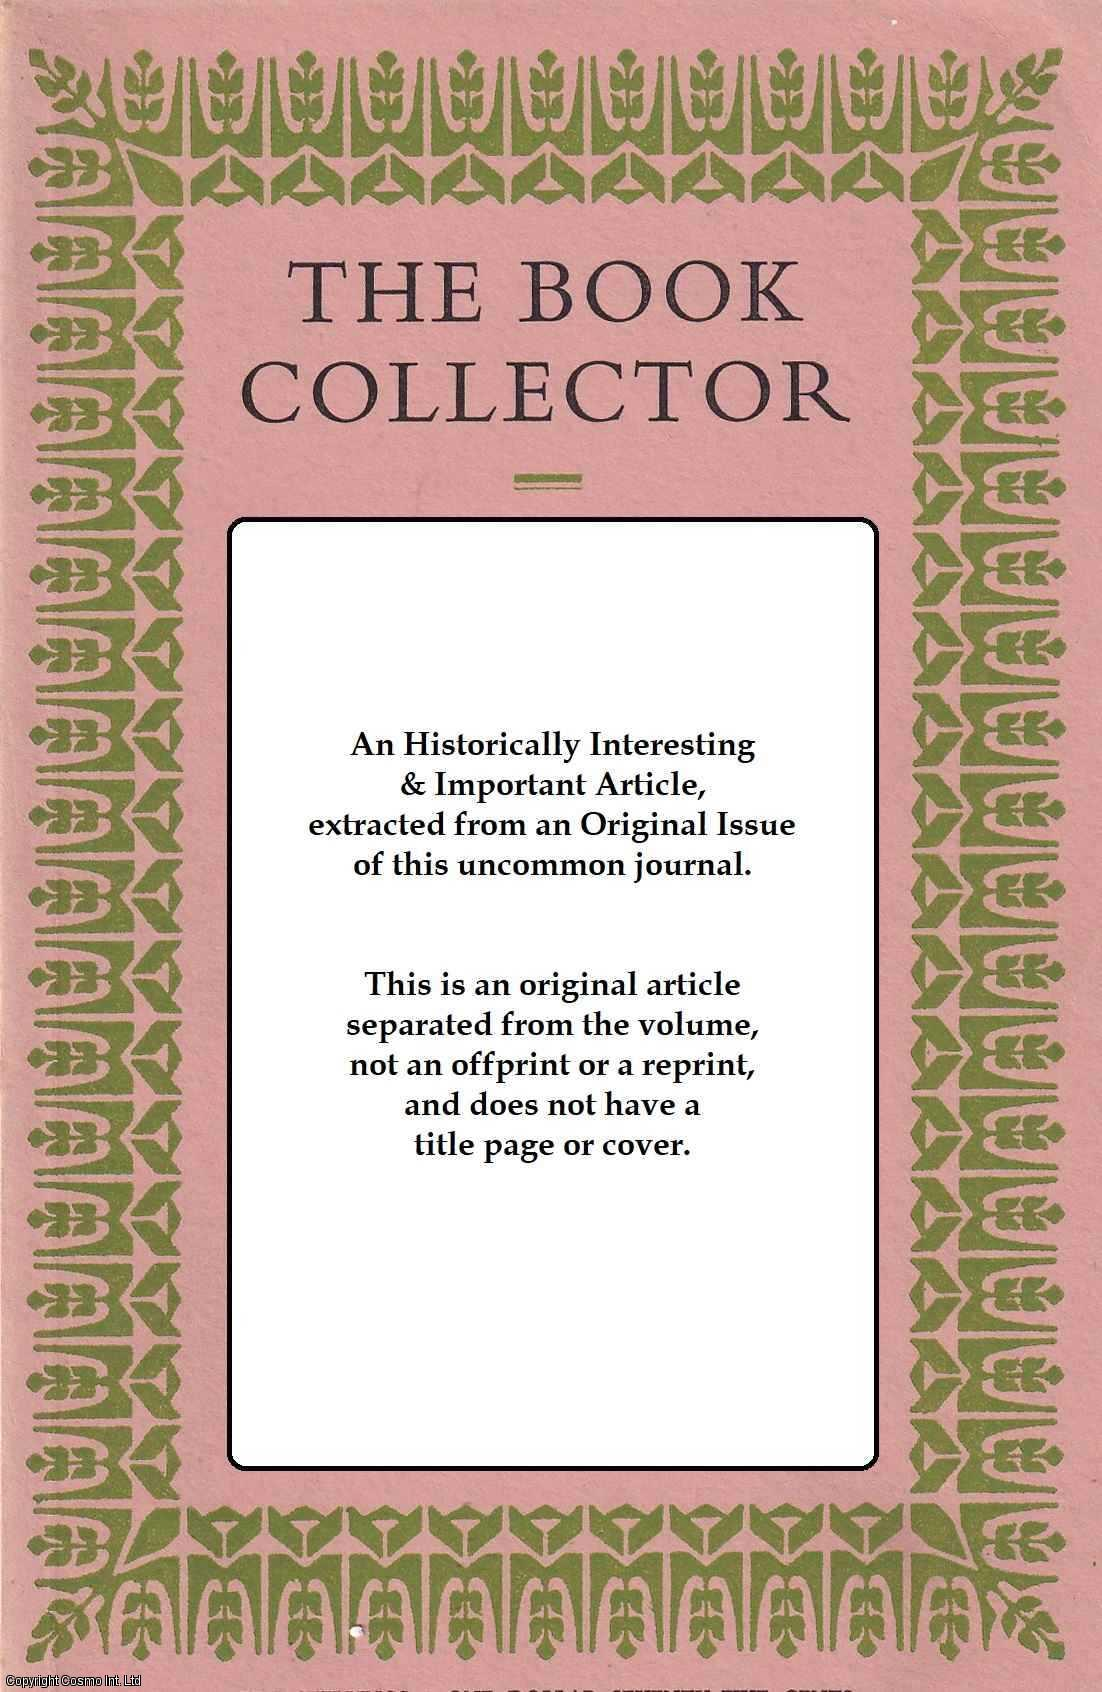 BARKER, NICOLAS - A Register of Writs and The Scales Binder. Part 2. The Scales Binder. This is an original article separated from an issue of The Book Collector Journal.